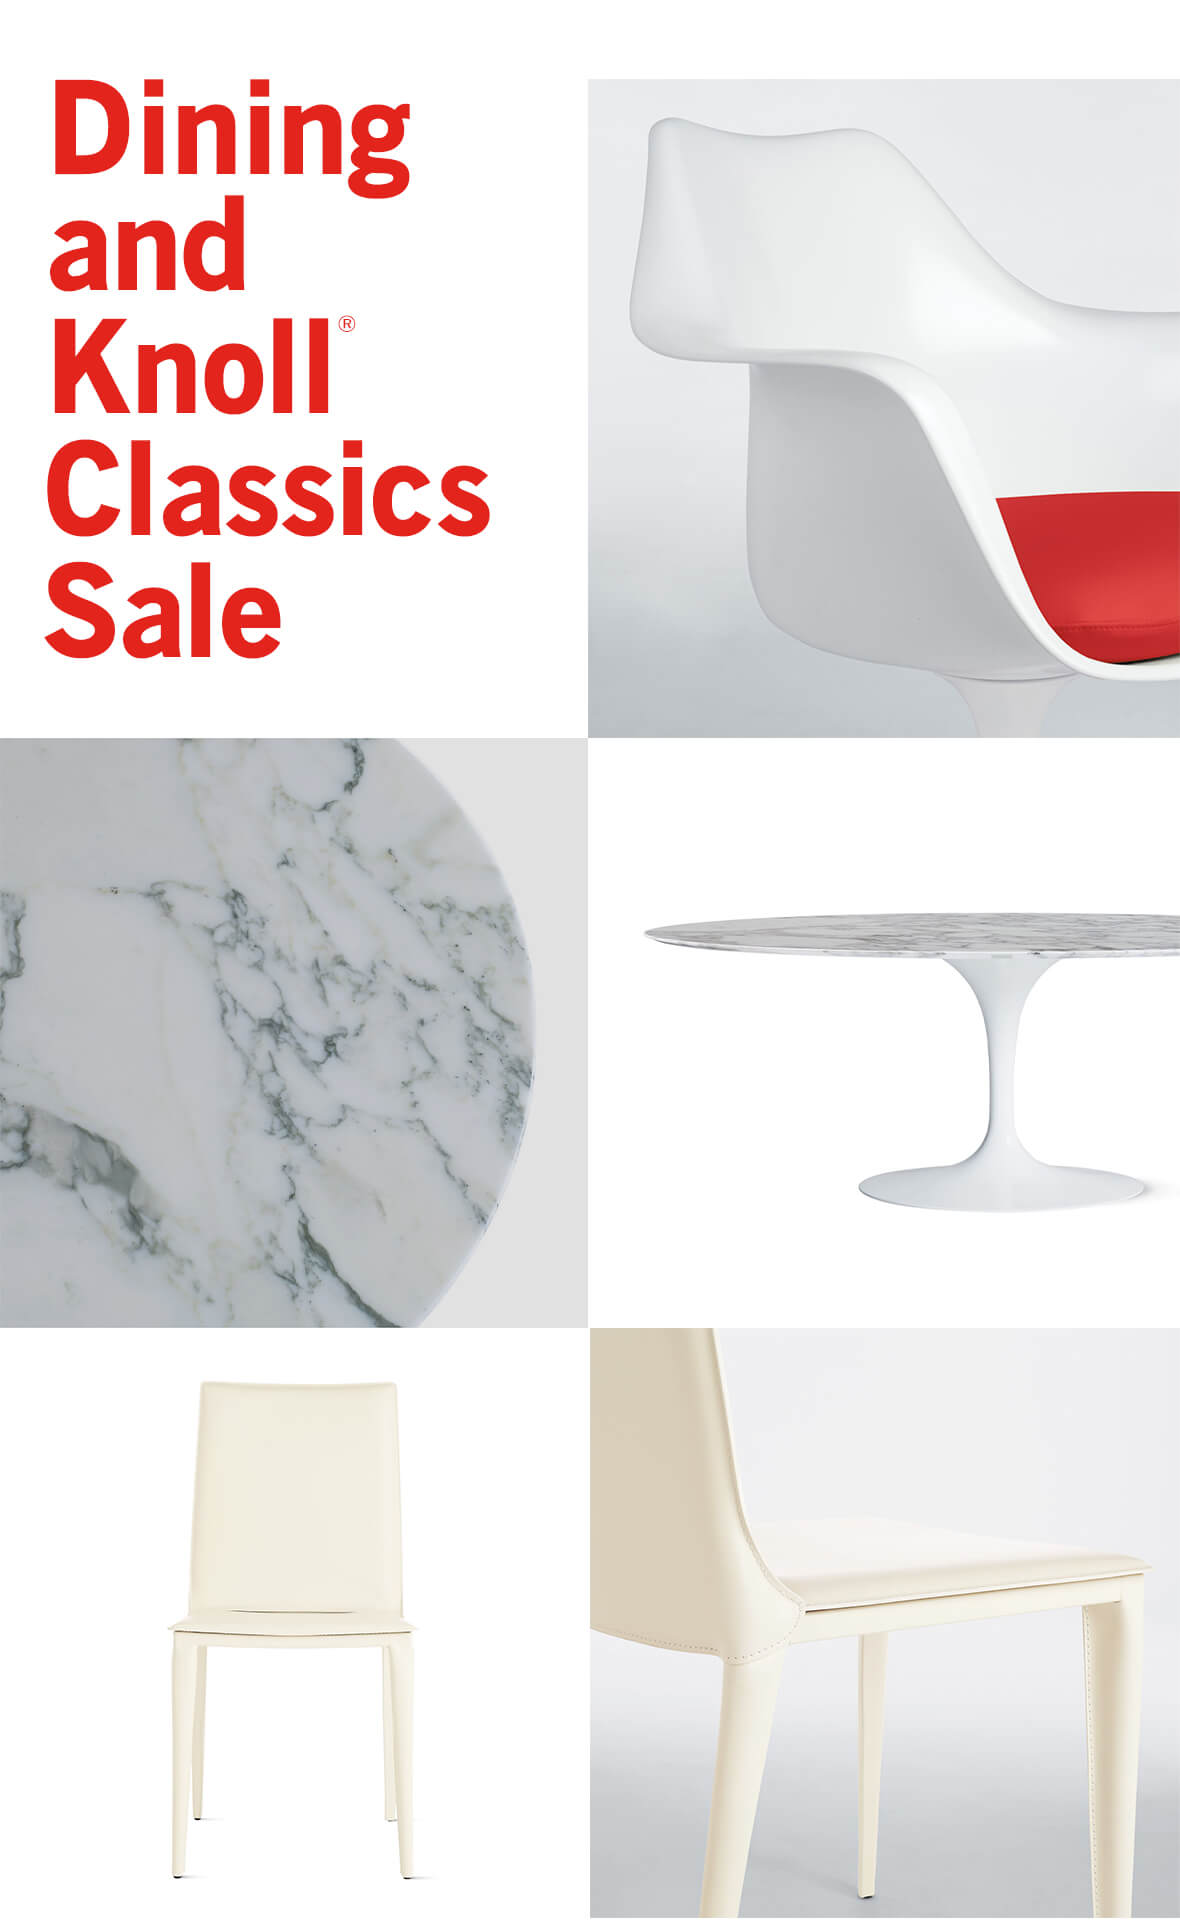 Dining and Knoll® Classics Sale